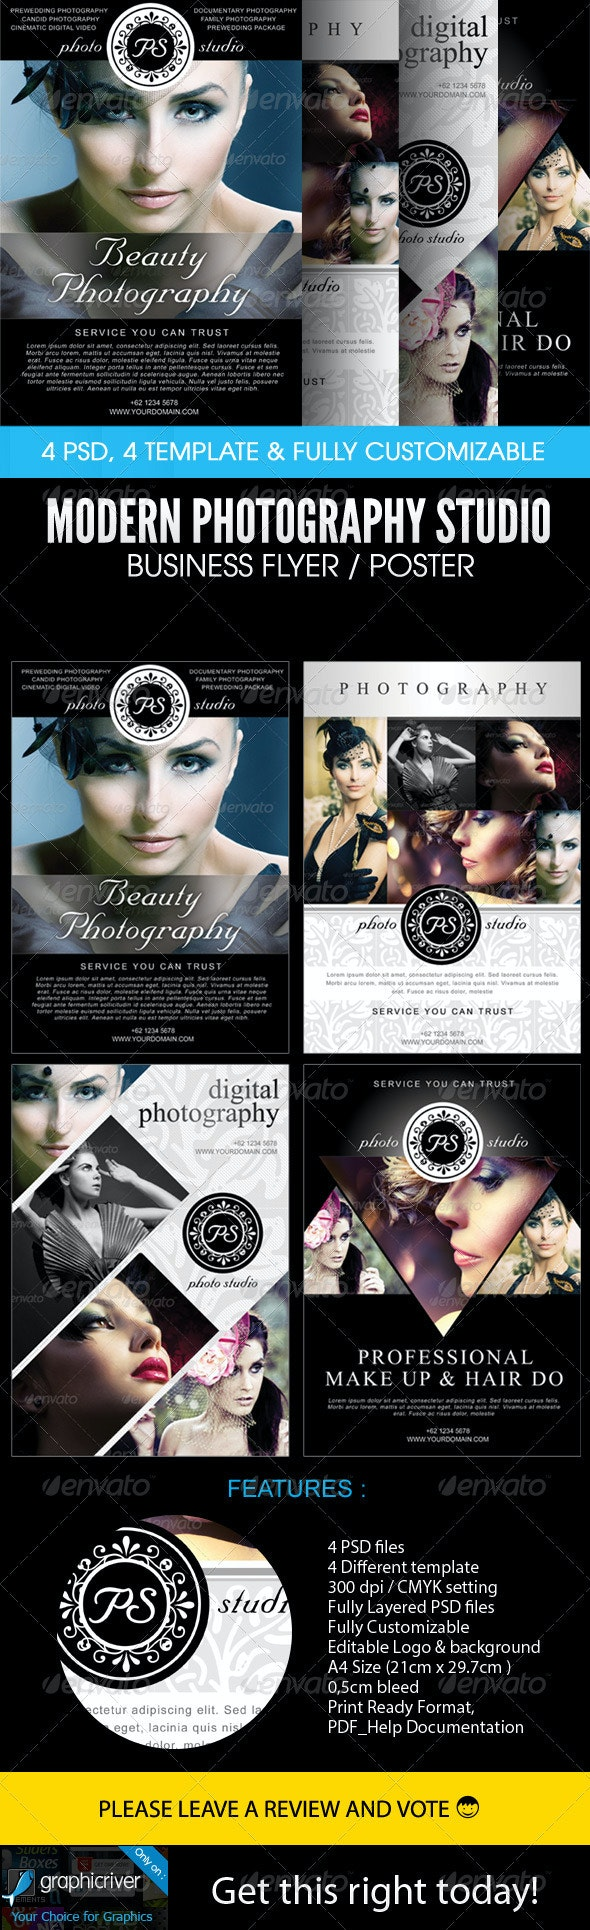 Modern Photography Studio Flyer/Poster - Flyers Print Templates